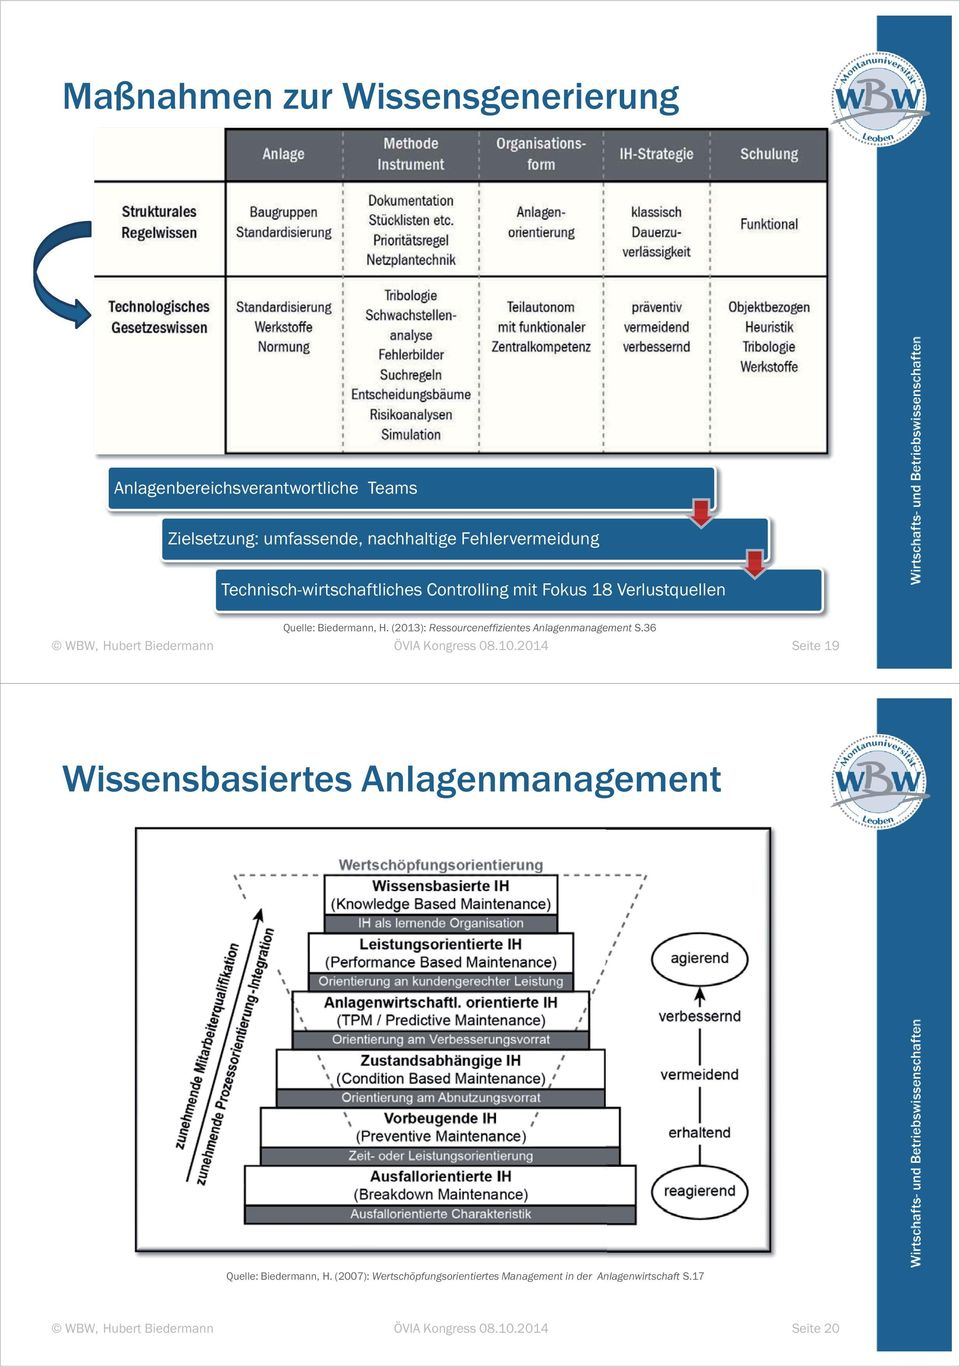 Biedermann, H. (2013): Ressourceneffizientes Anlagenmanagement S.